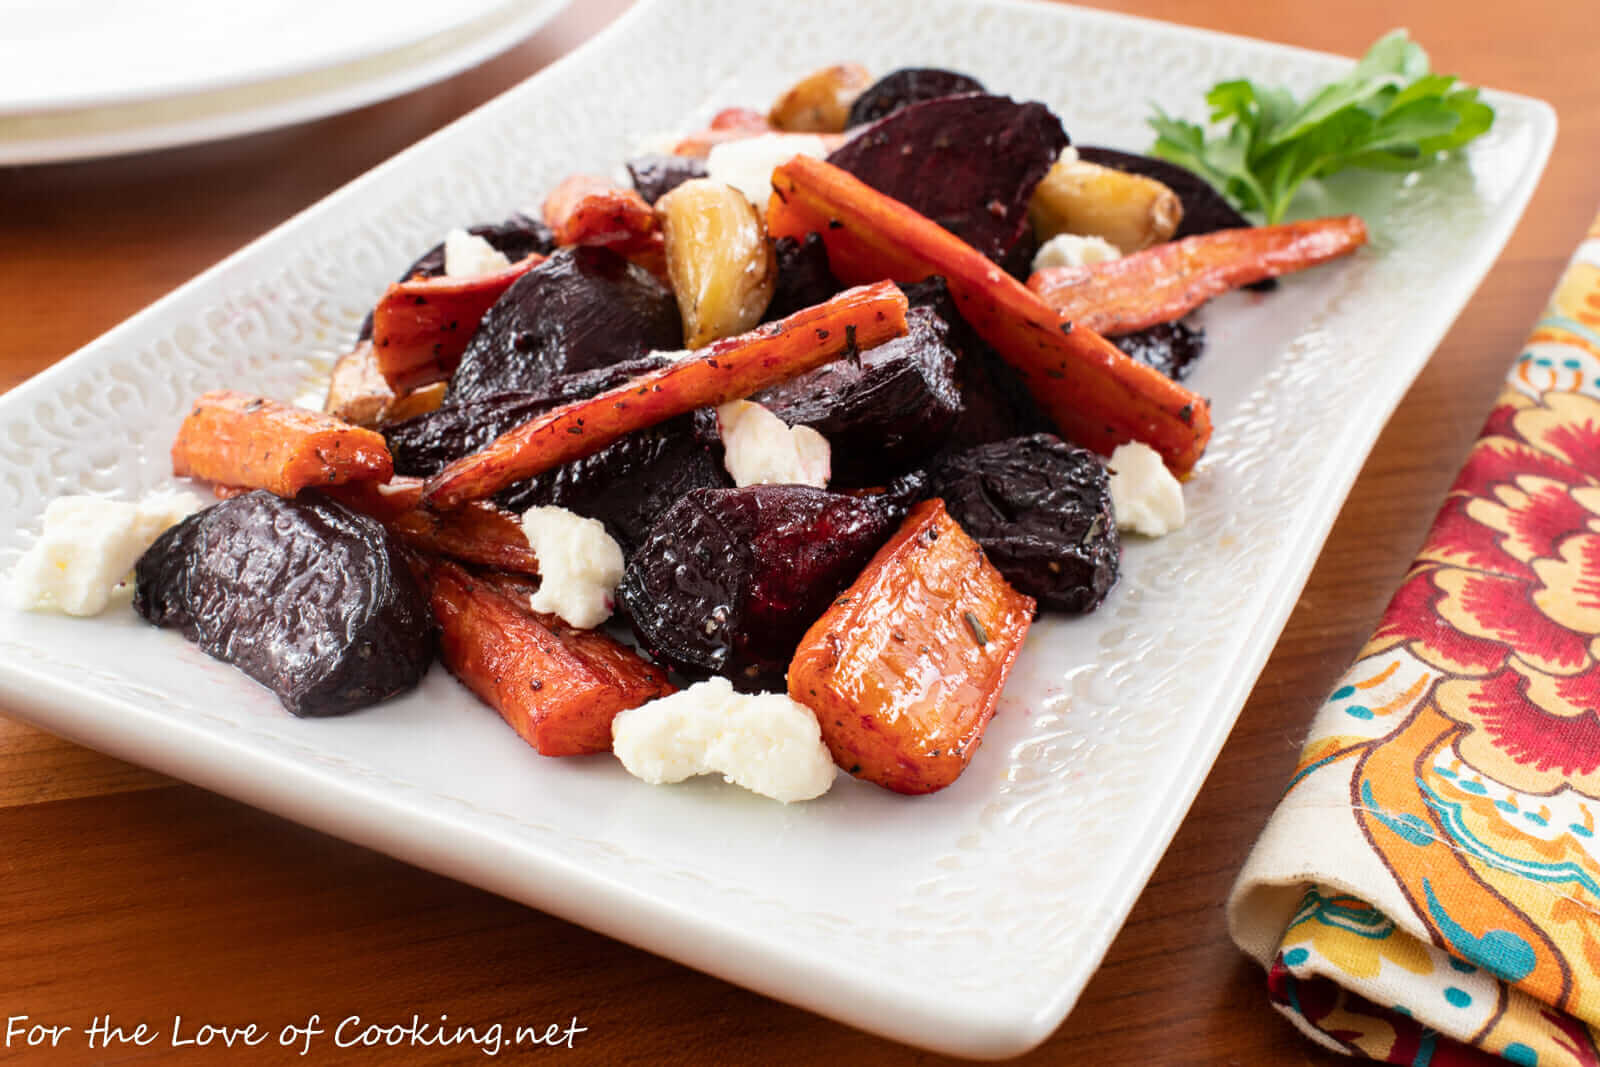 Roasted Beets and Carrots with Feta